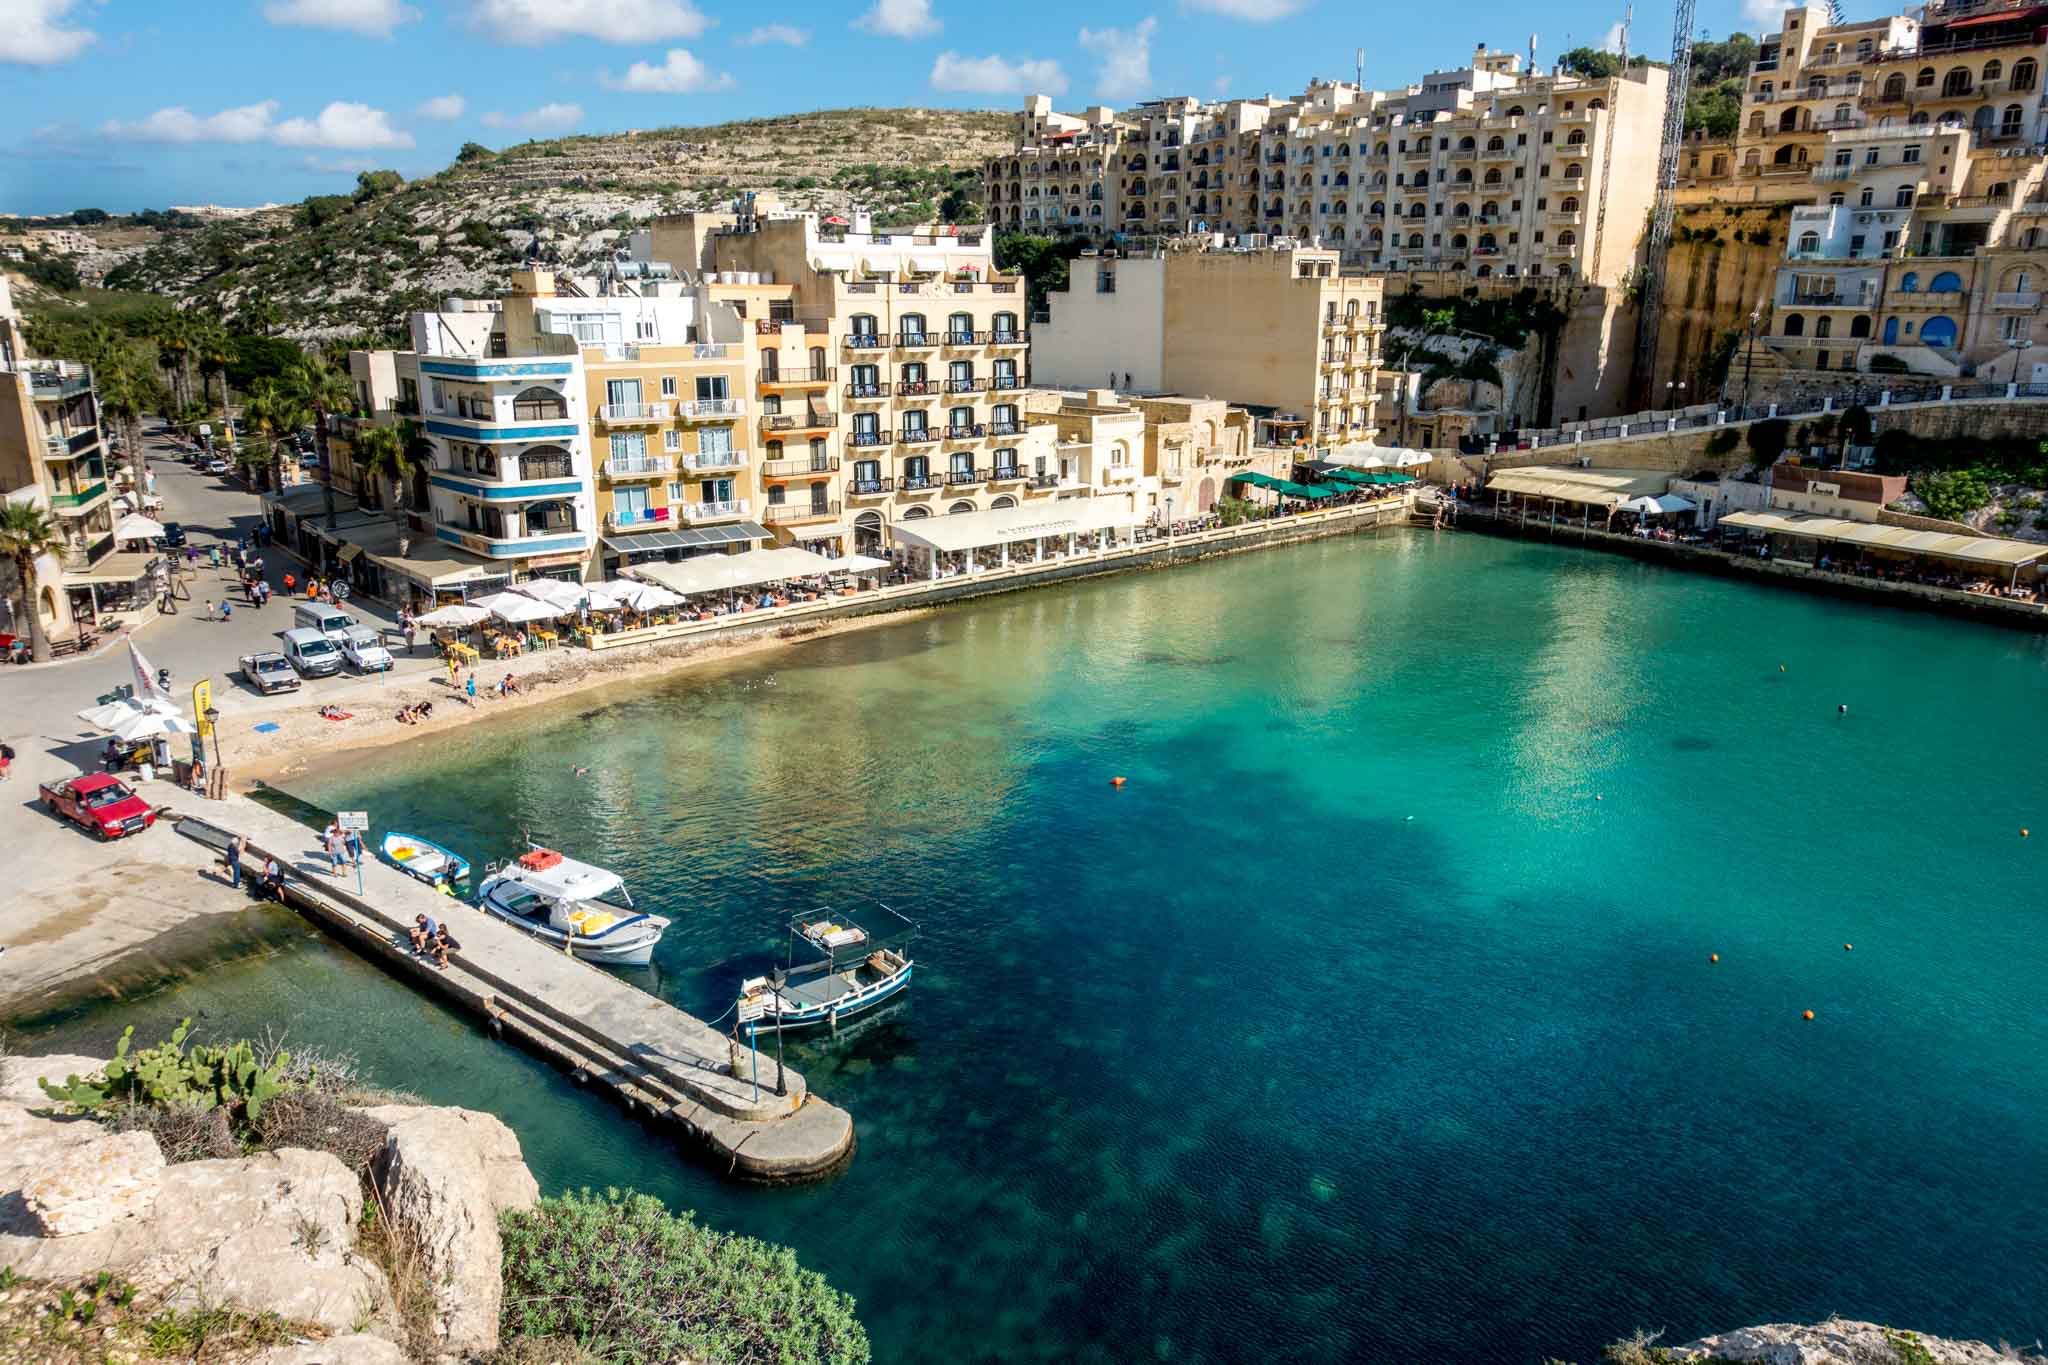 Xlend is a picture-perfect spot for a seafood lunch in Gozo.